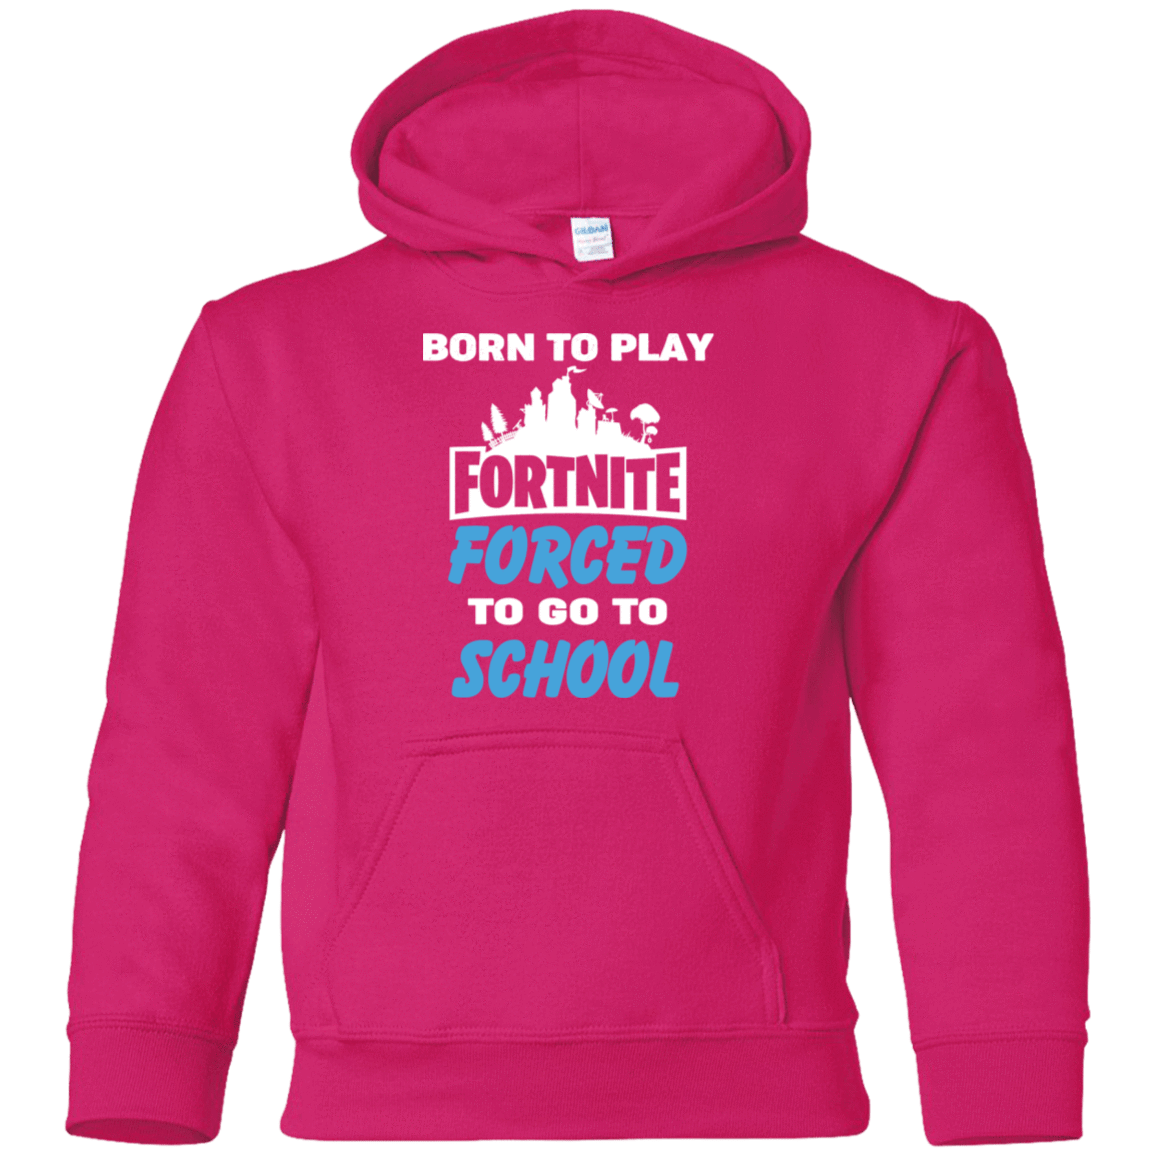 Born To Play Fortnite Forced To Go To School 59-5071-74332978-24889 - Tee Ript